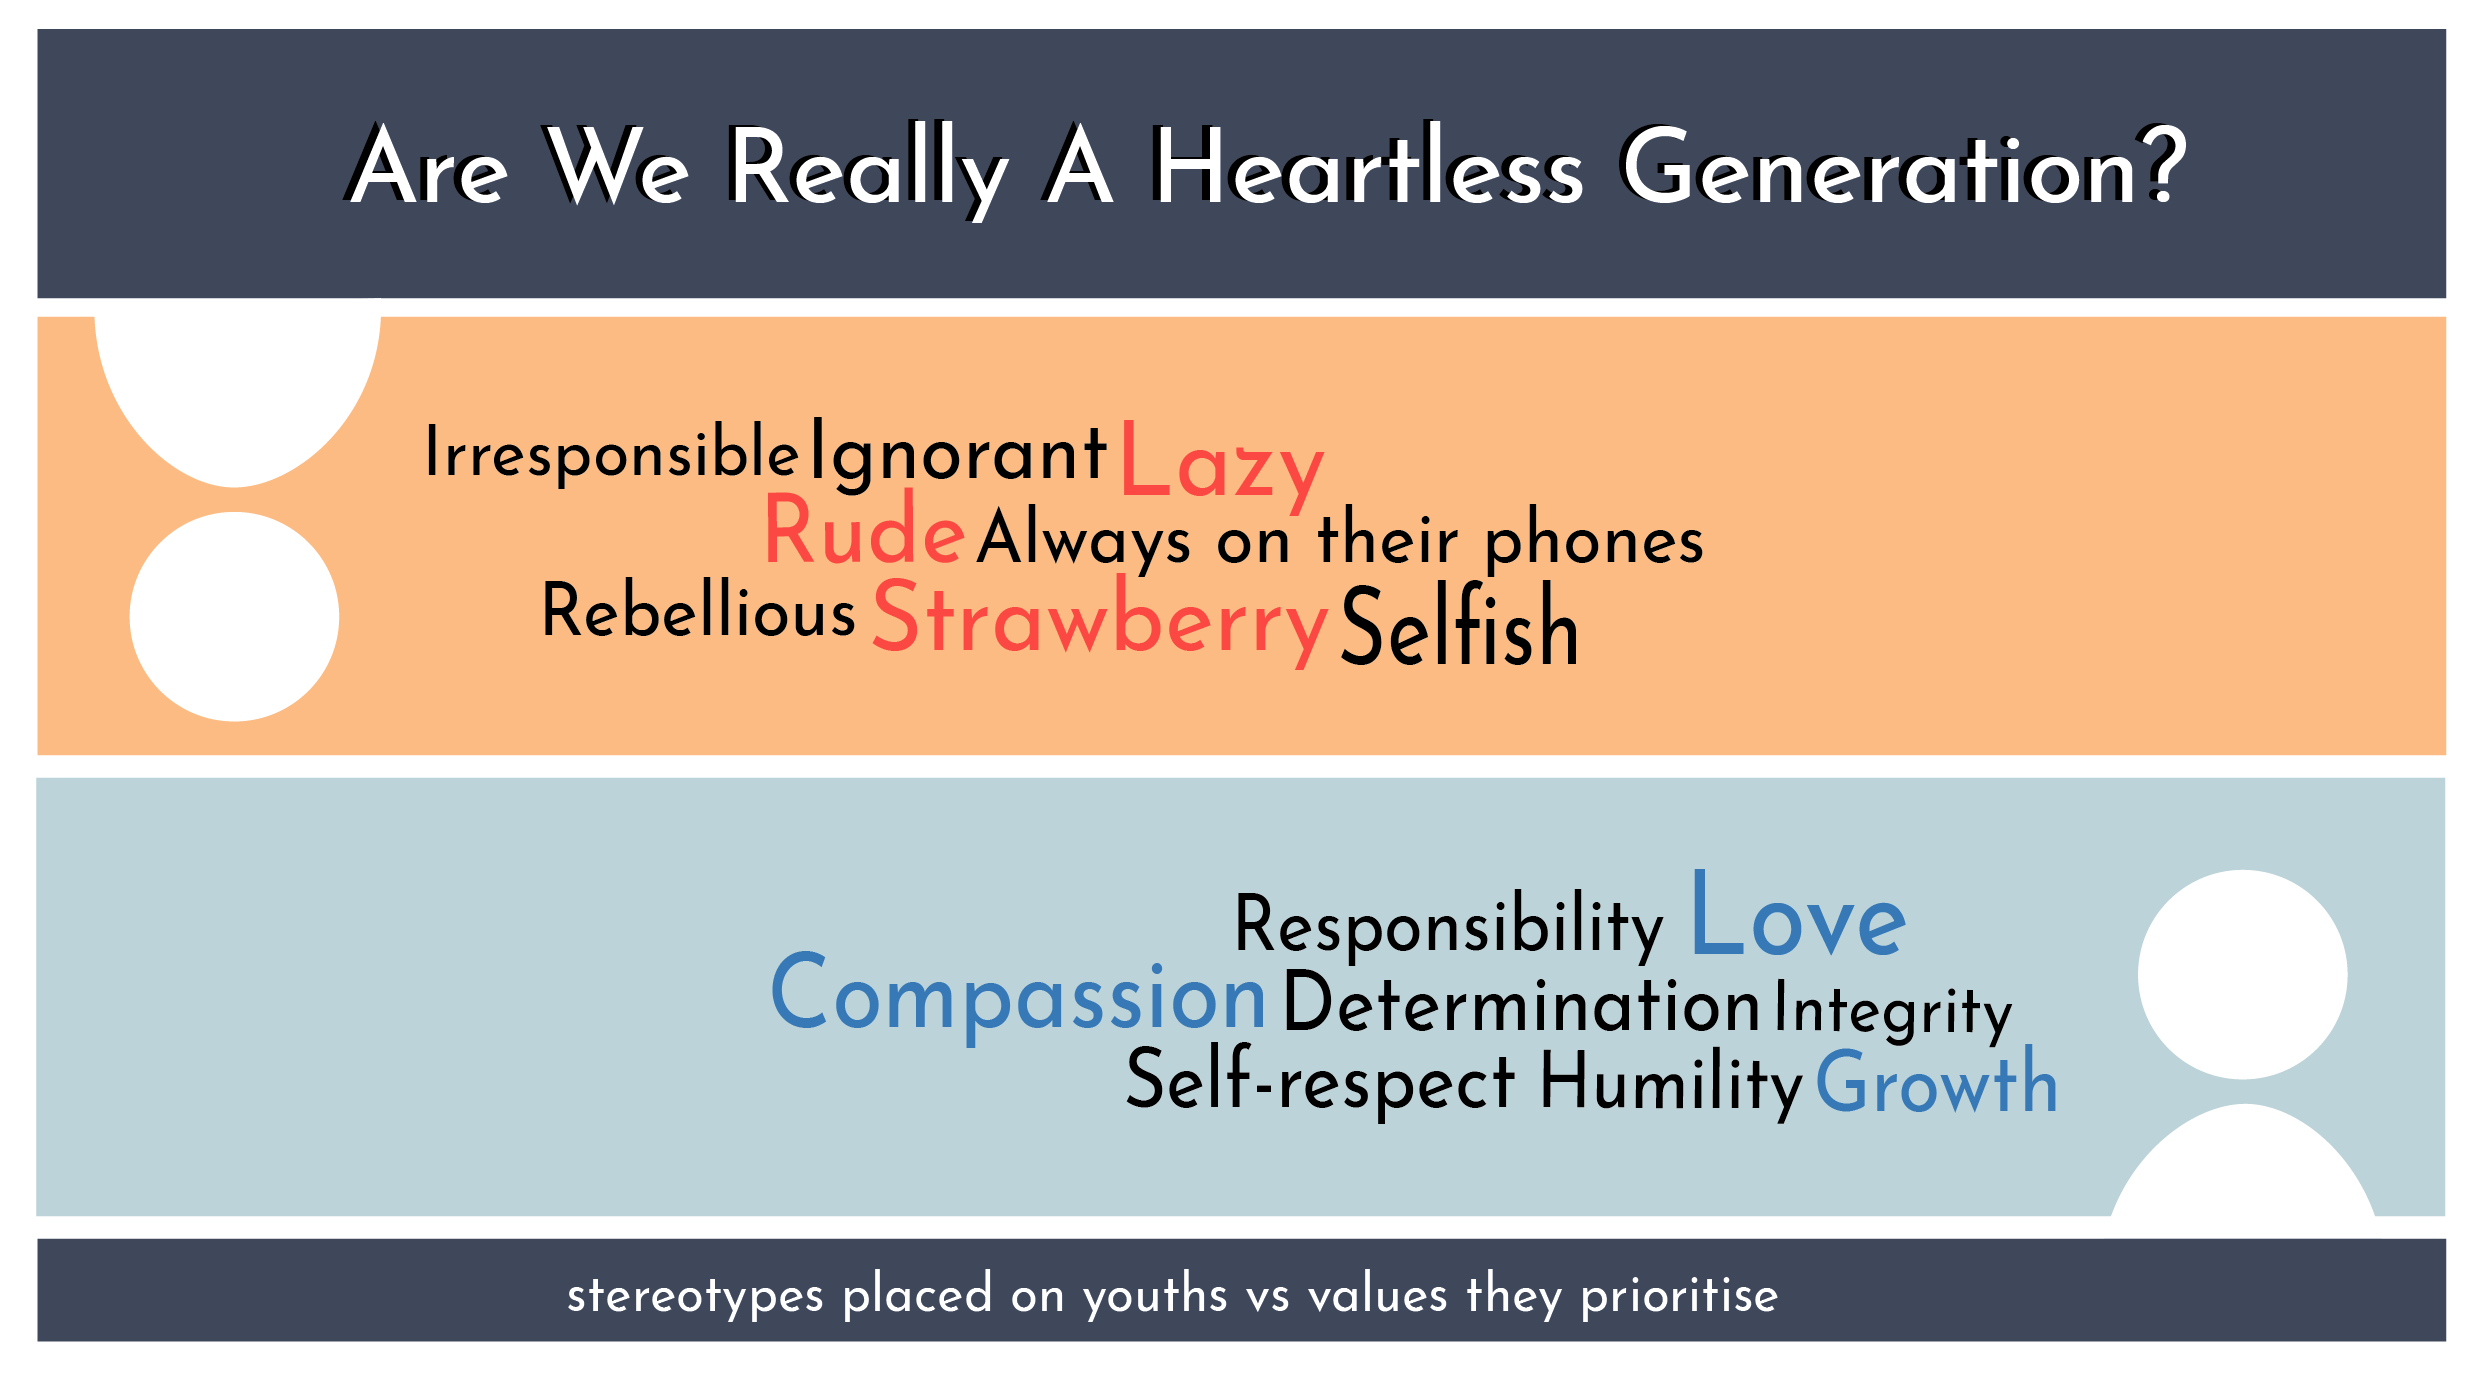 Are We Really A Heartless Generation?